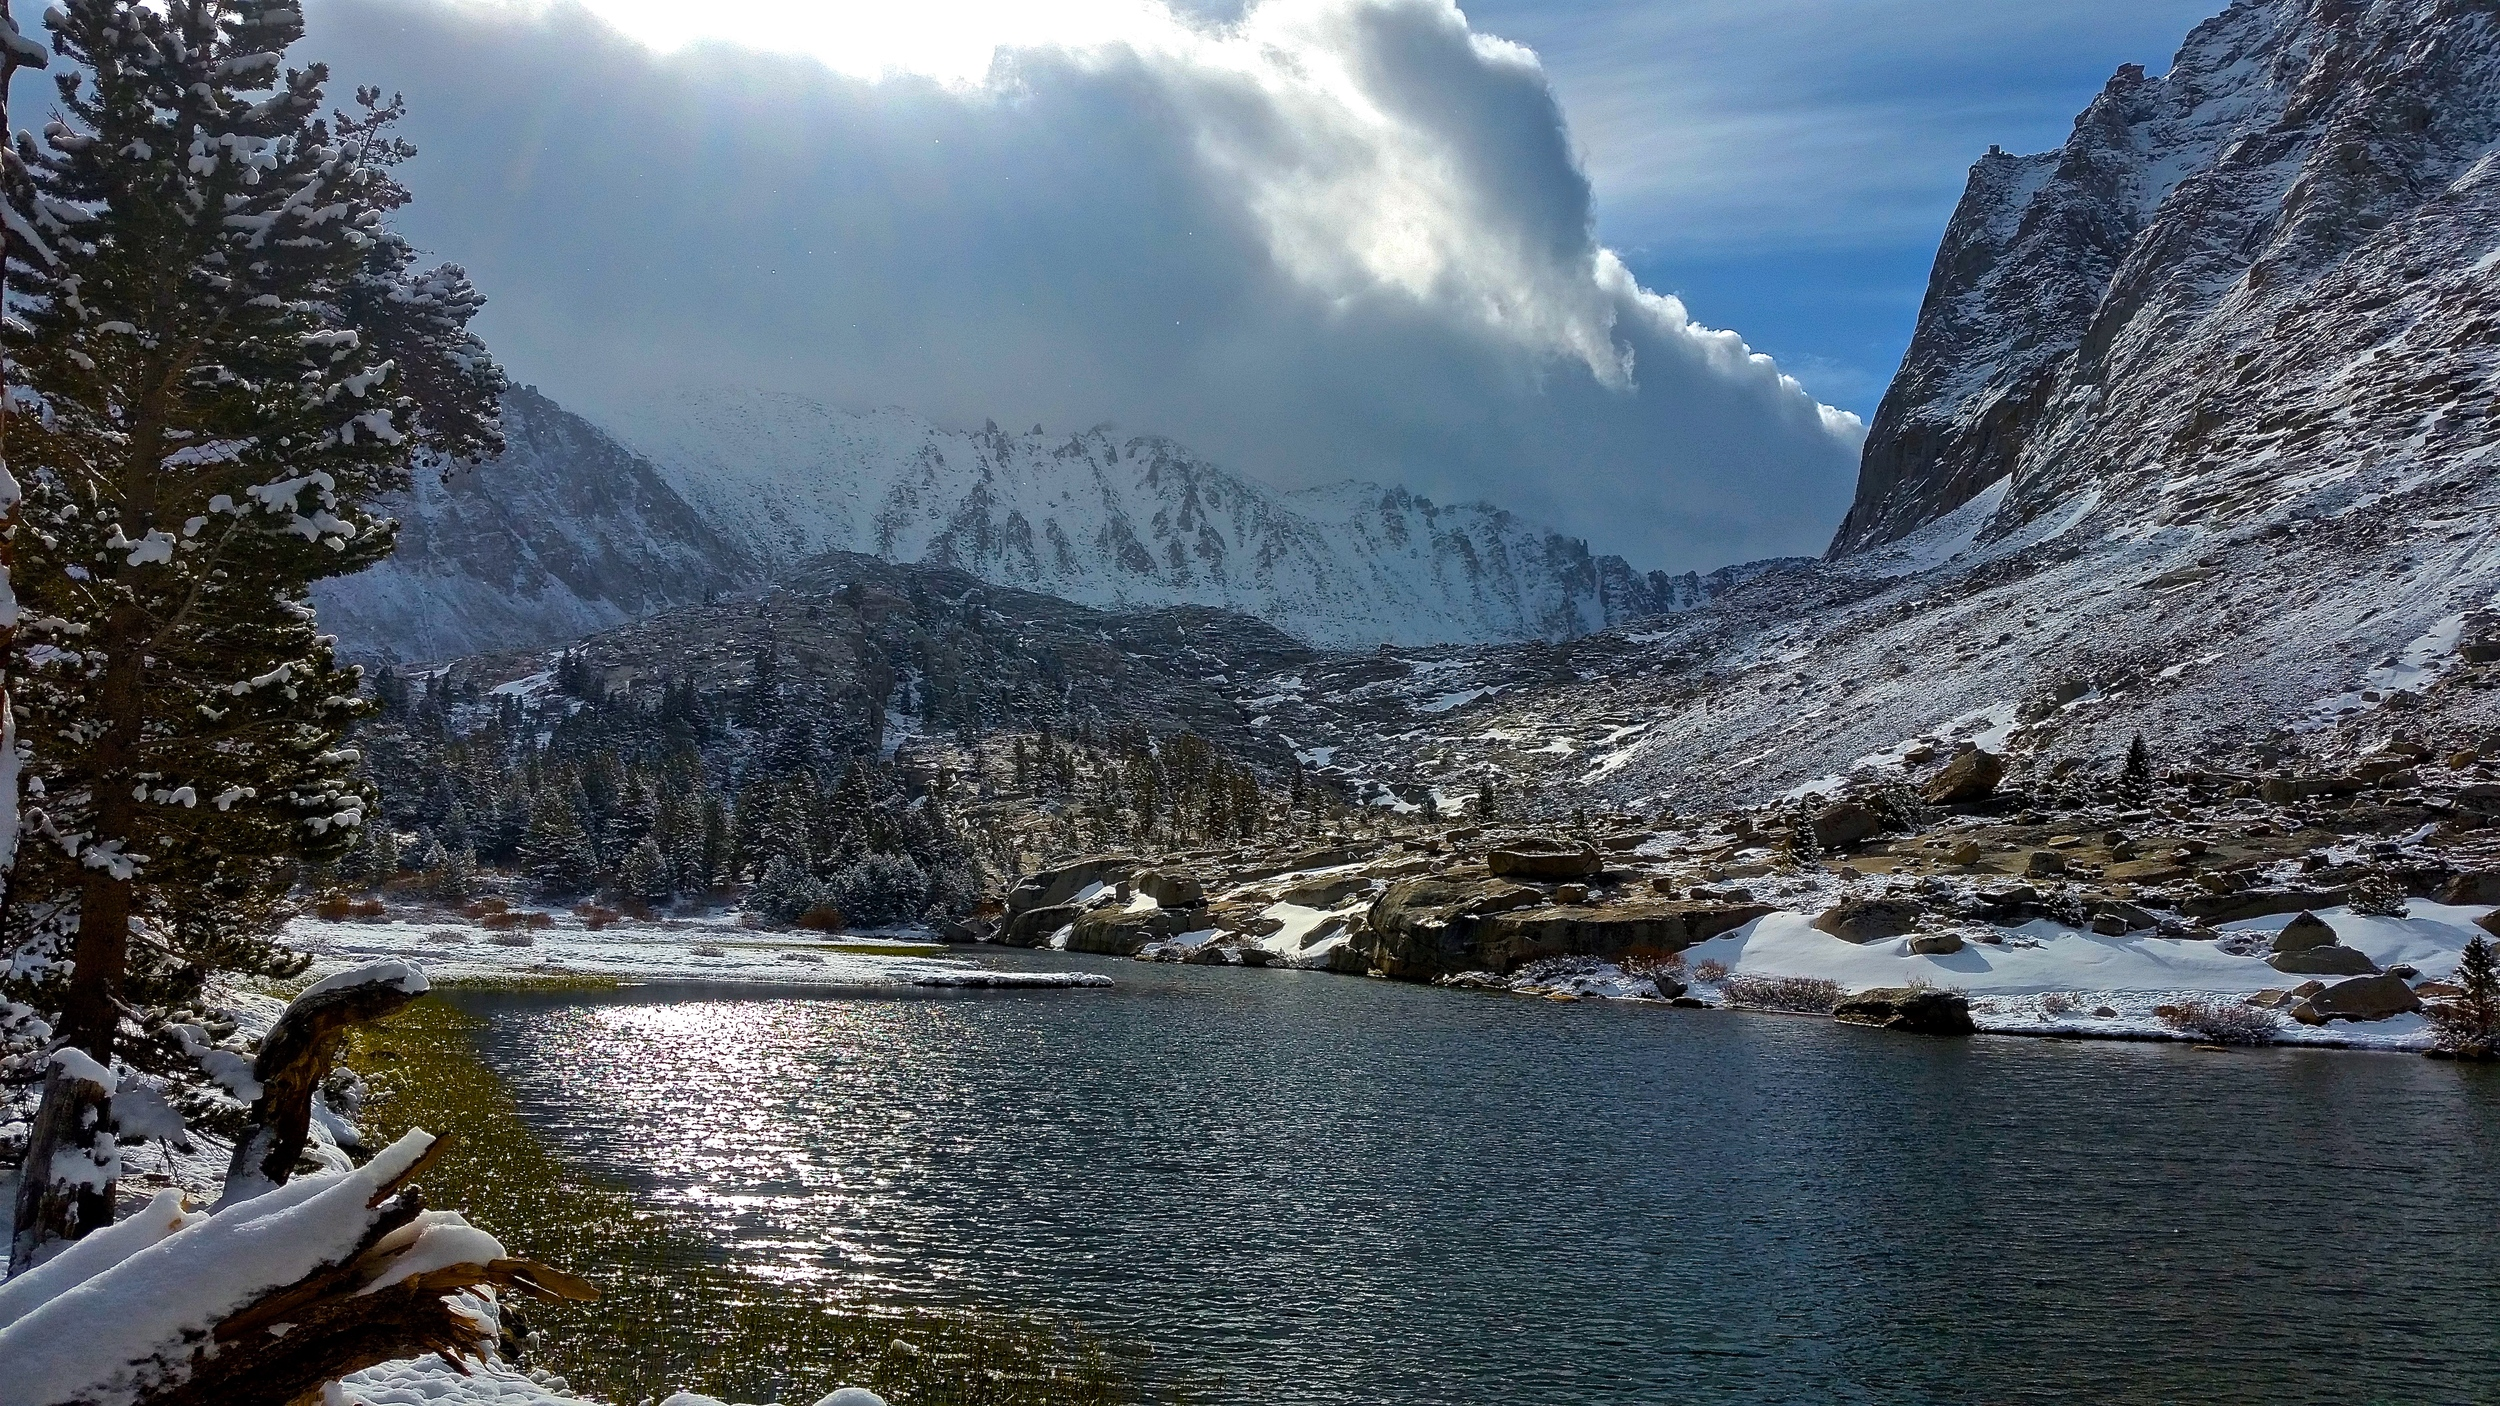 On the approach to Mt. Whitney via the John Muir Trail with a storm brewing in the background